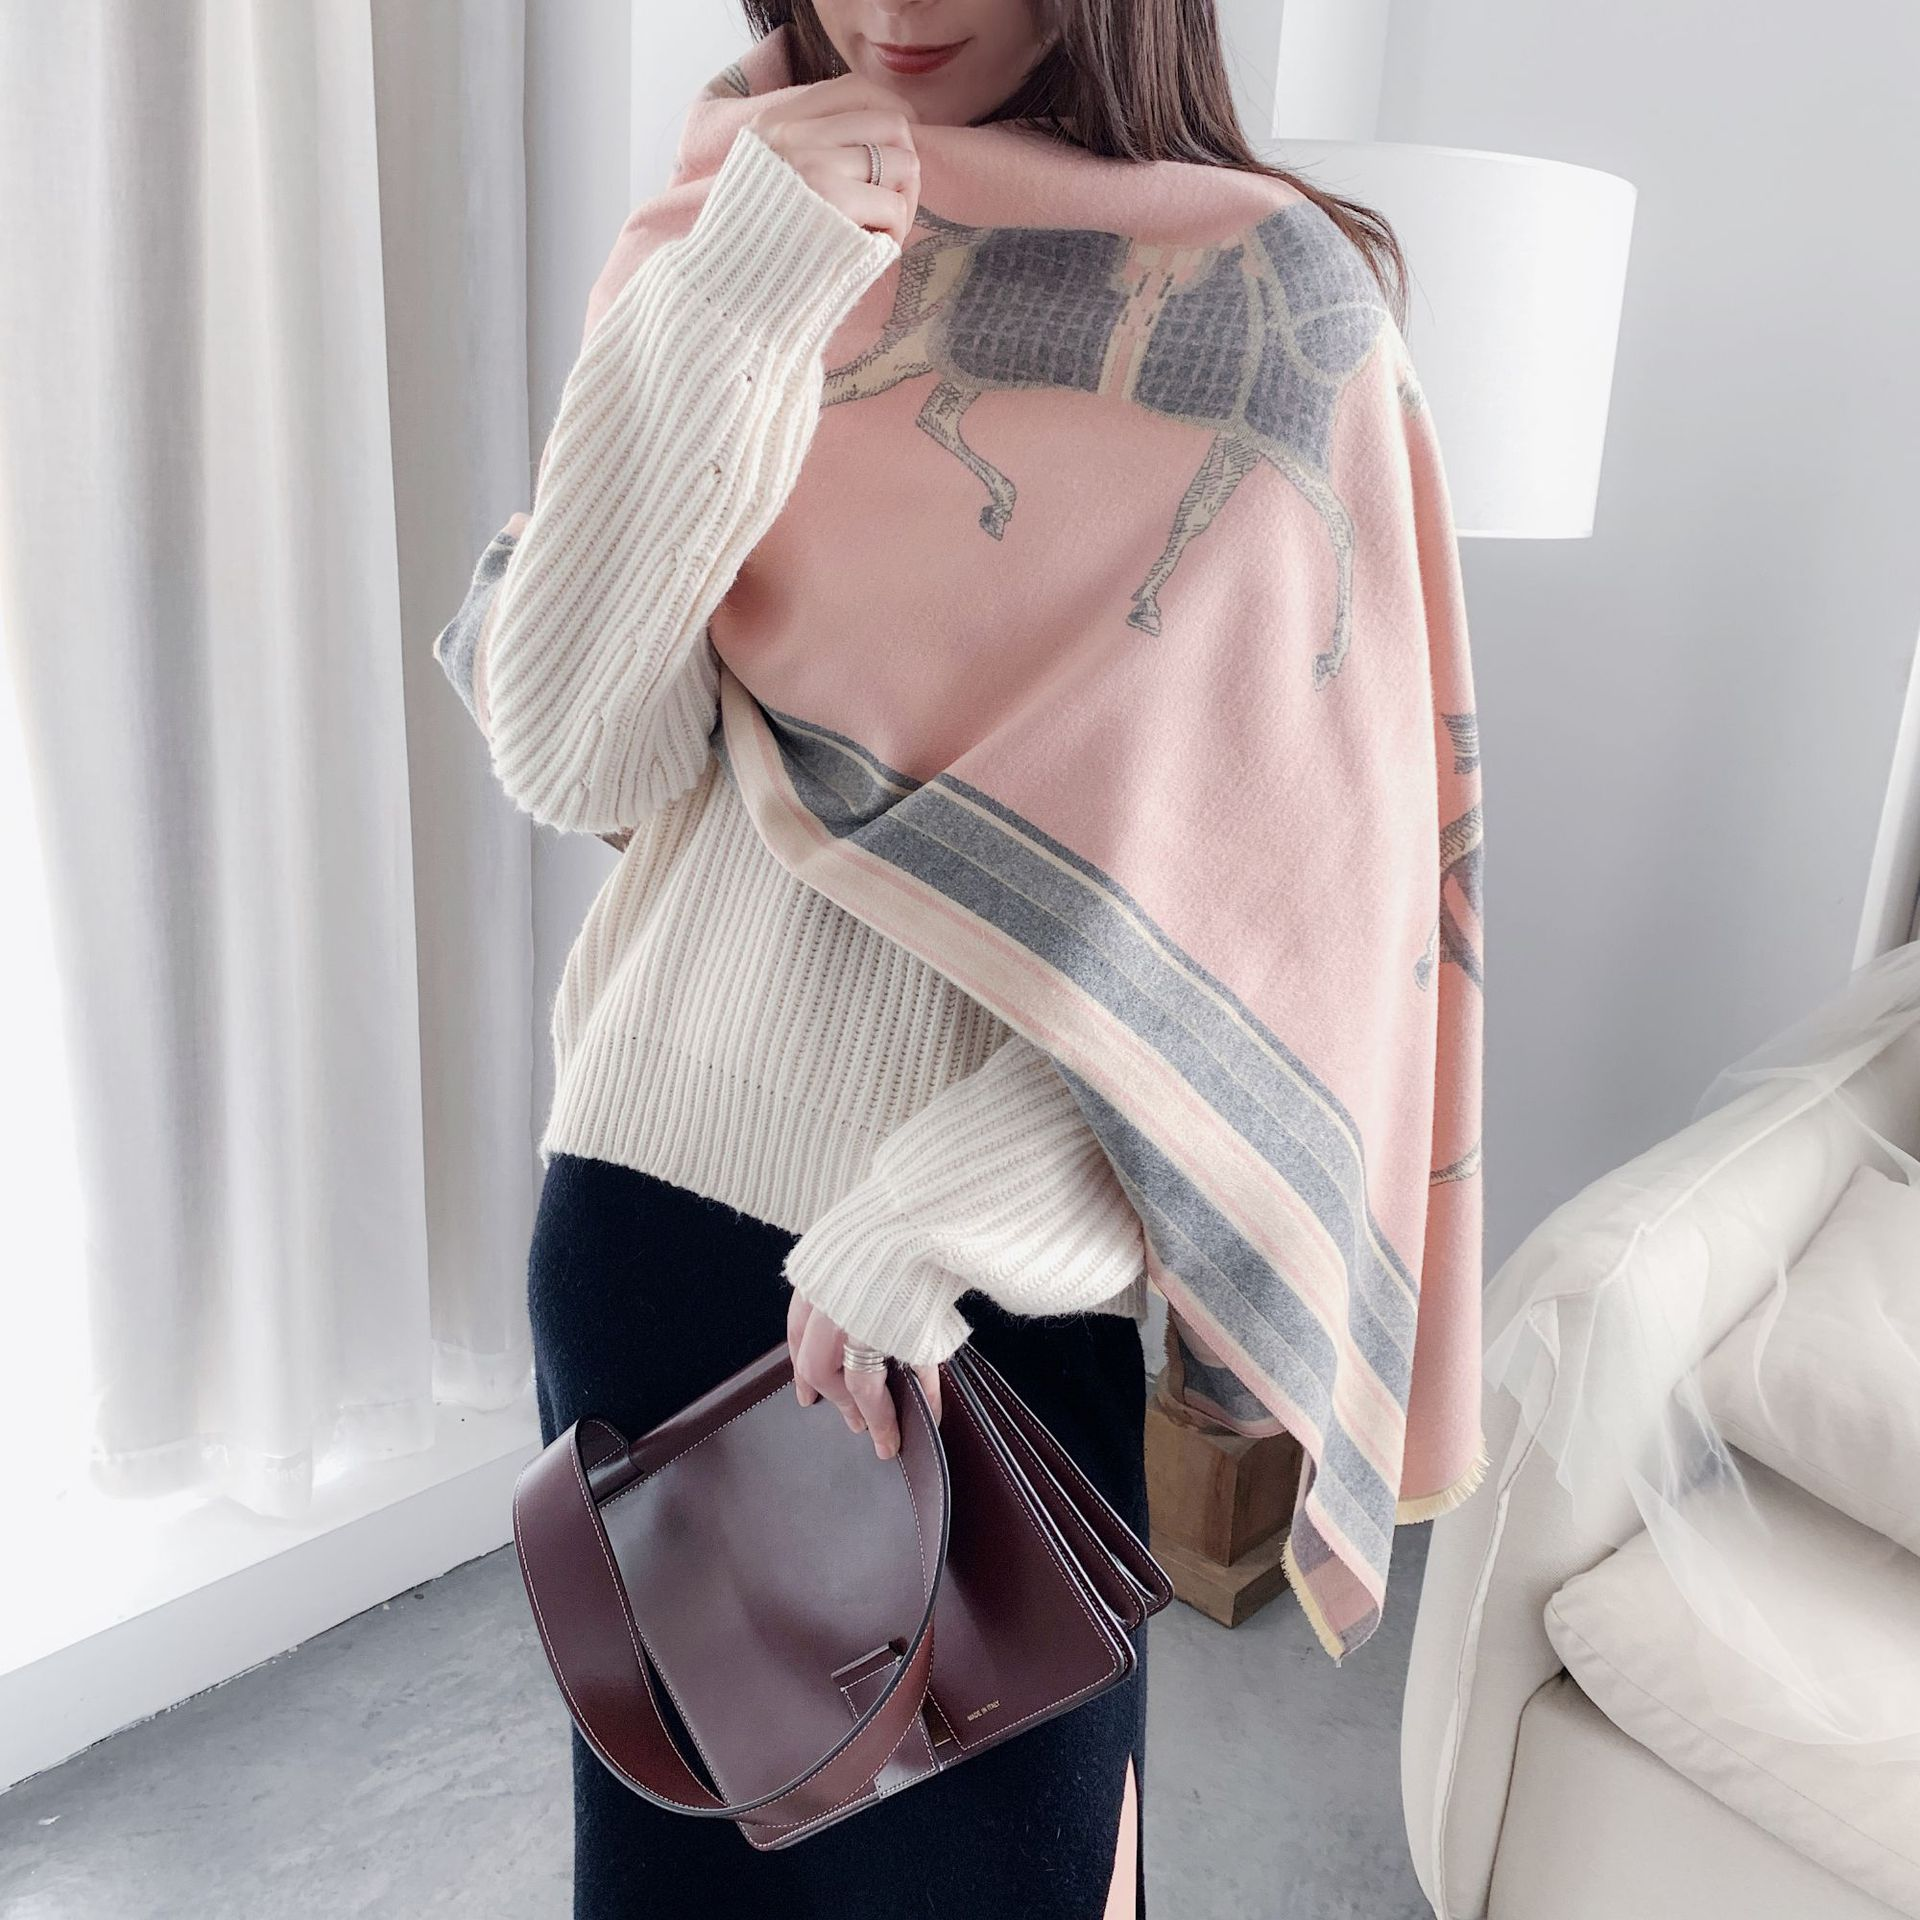 Image 5 - Fashion Winter Scarf Women Cashmere Warm Pashmina Foulard Lady Luxury Horse Scarves Thick Soft Bufanda Shawls Wraps 2019 New-in Women's Scarves from Apparel Accessories